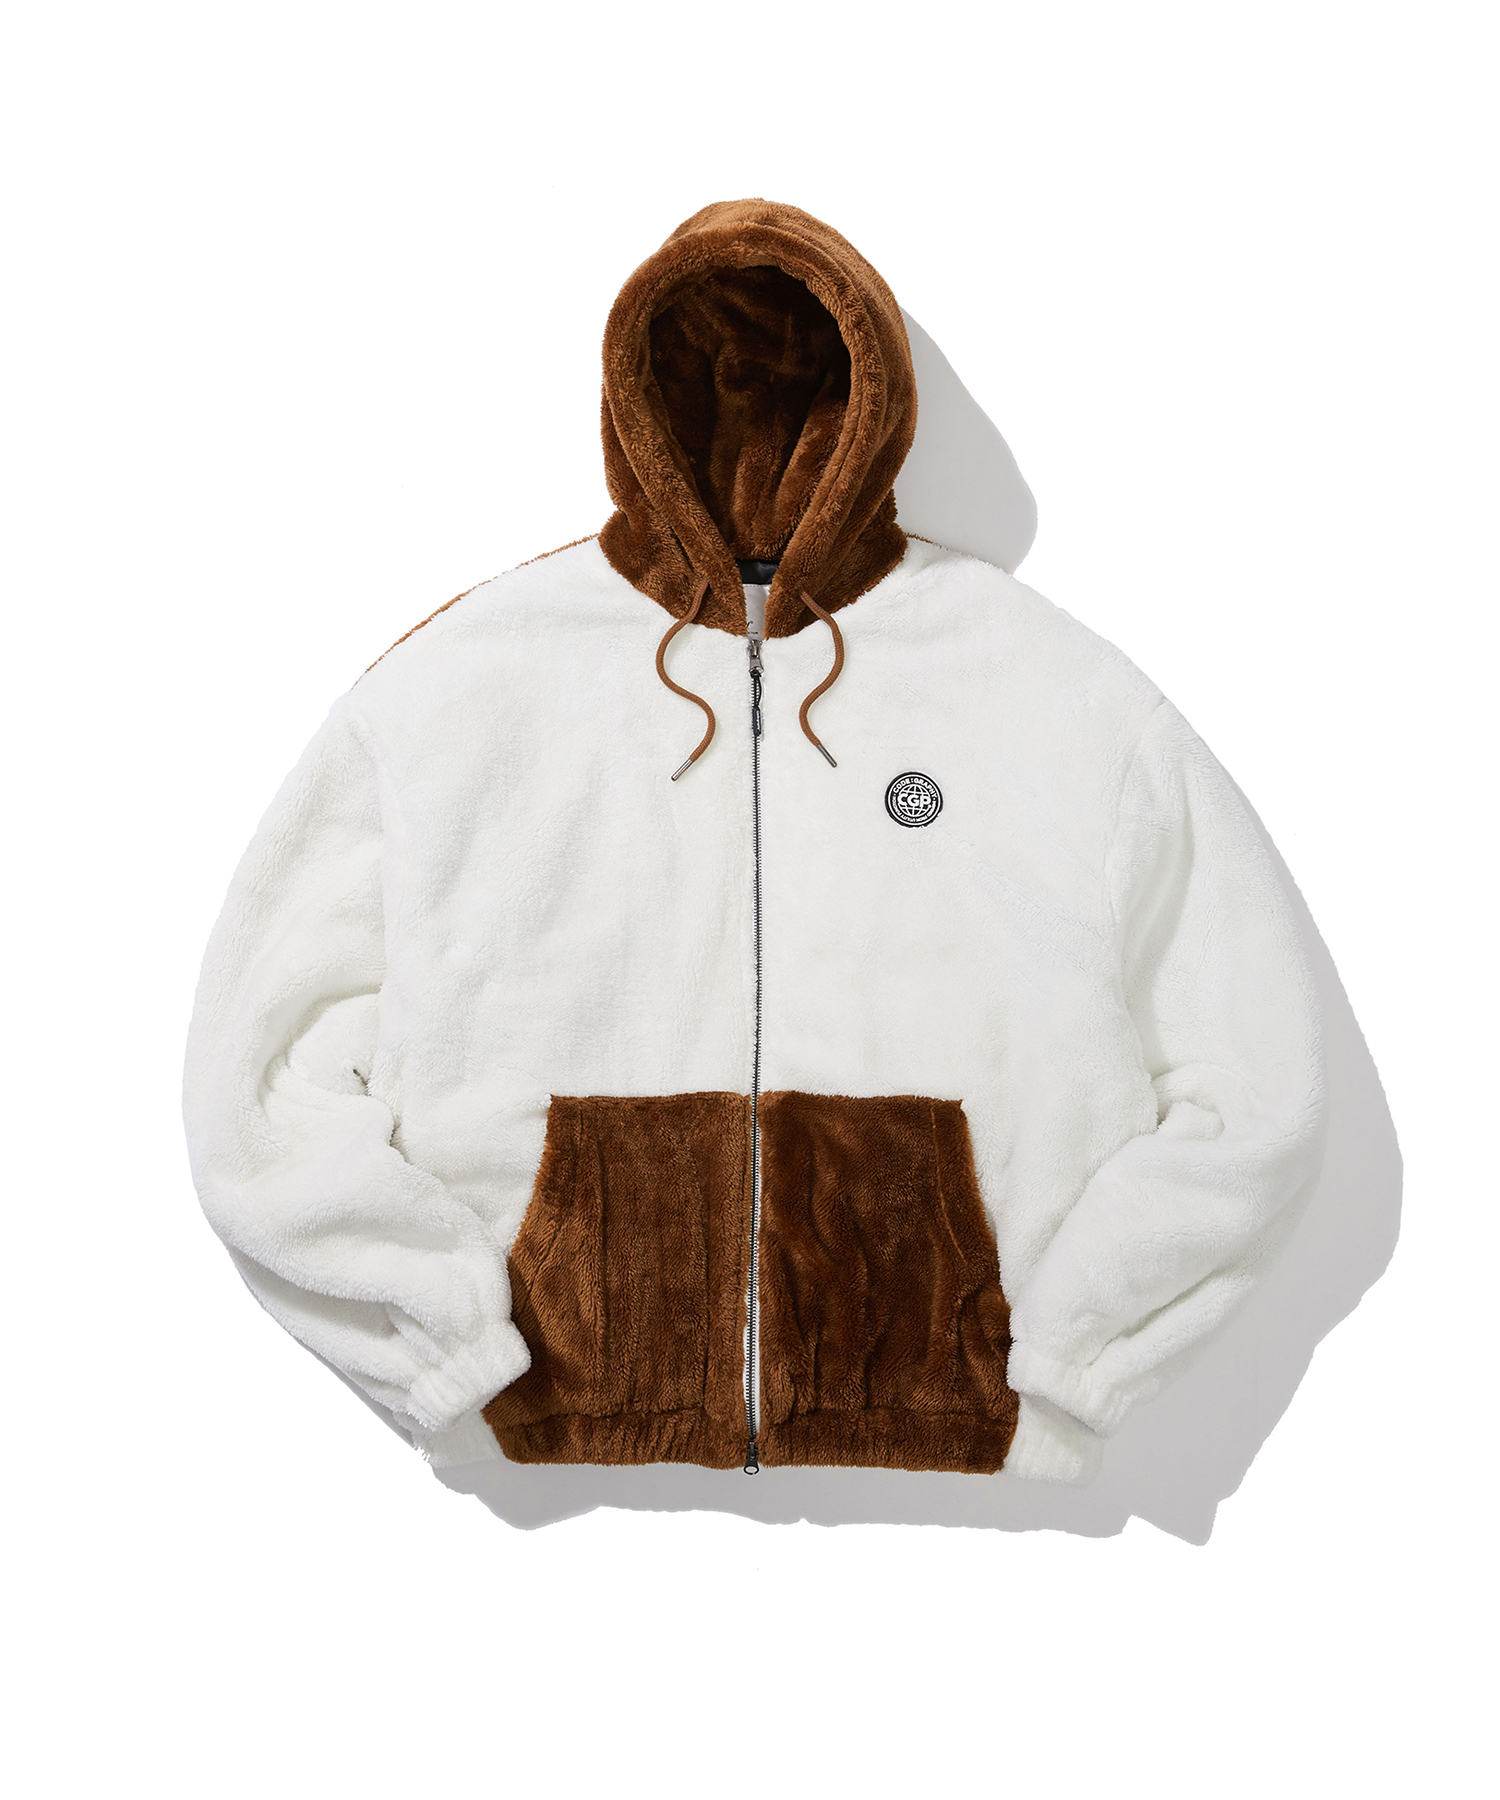 HEAVY BOA FLEECE HOOD JACKET - BR